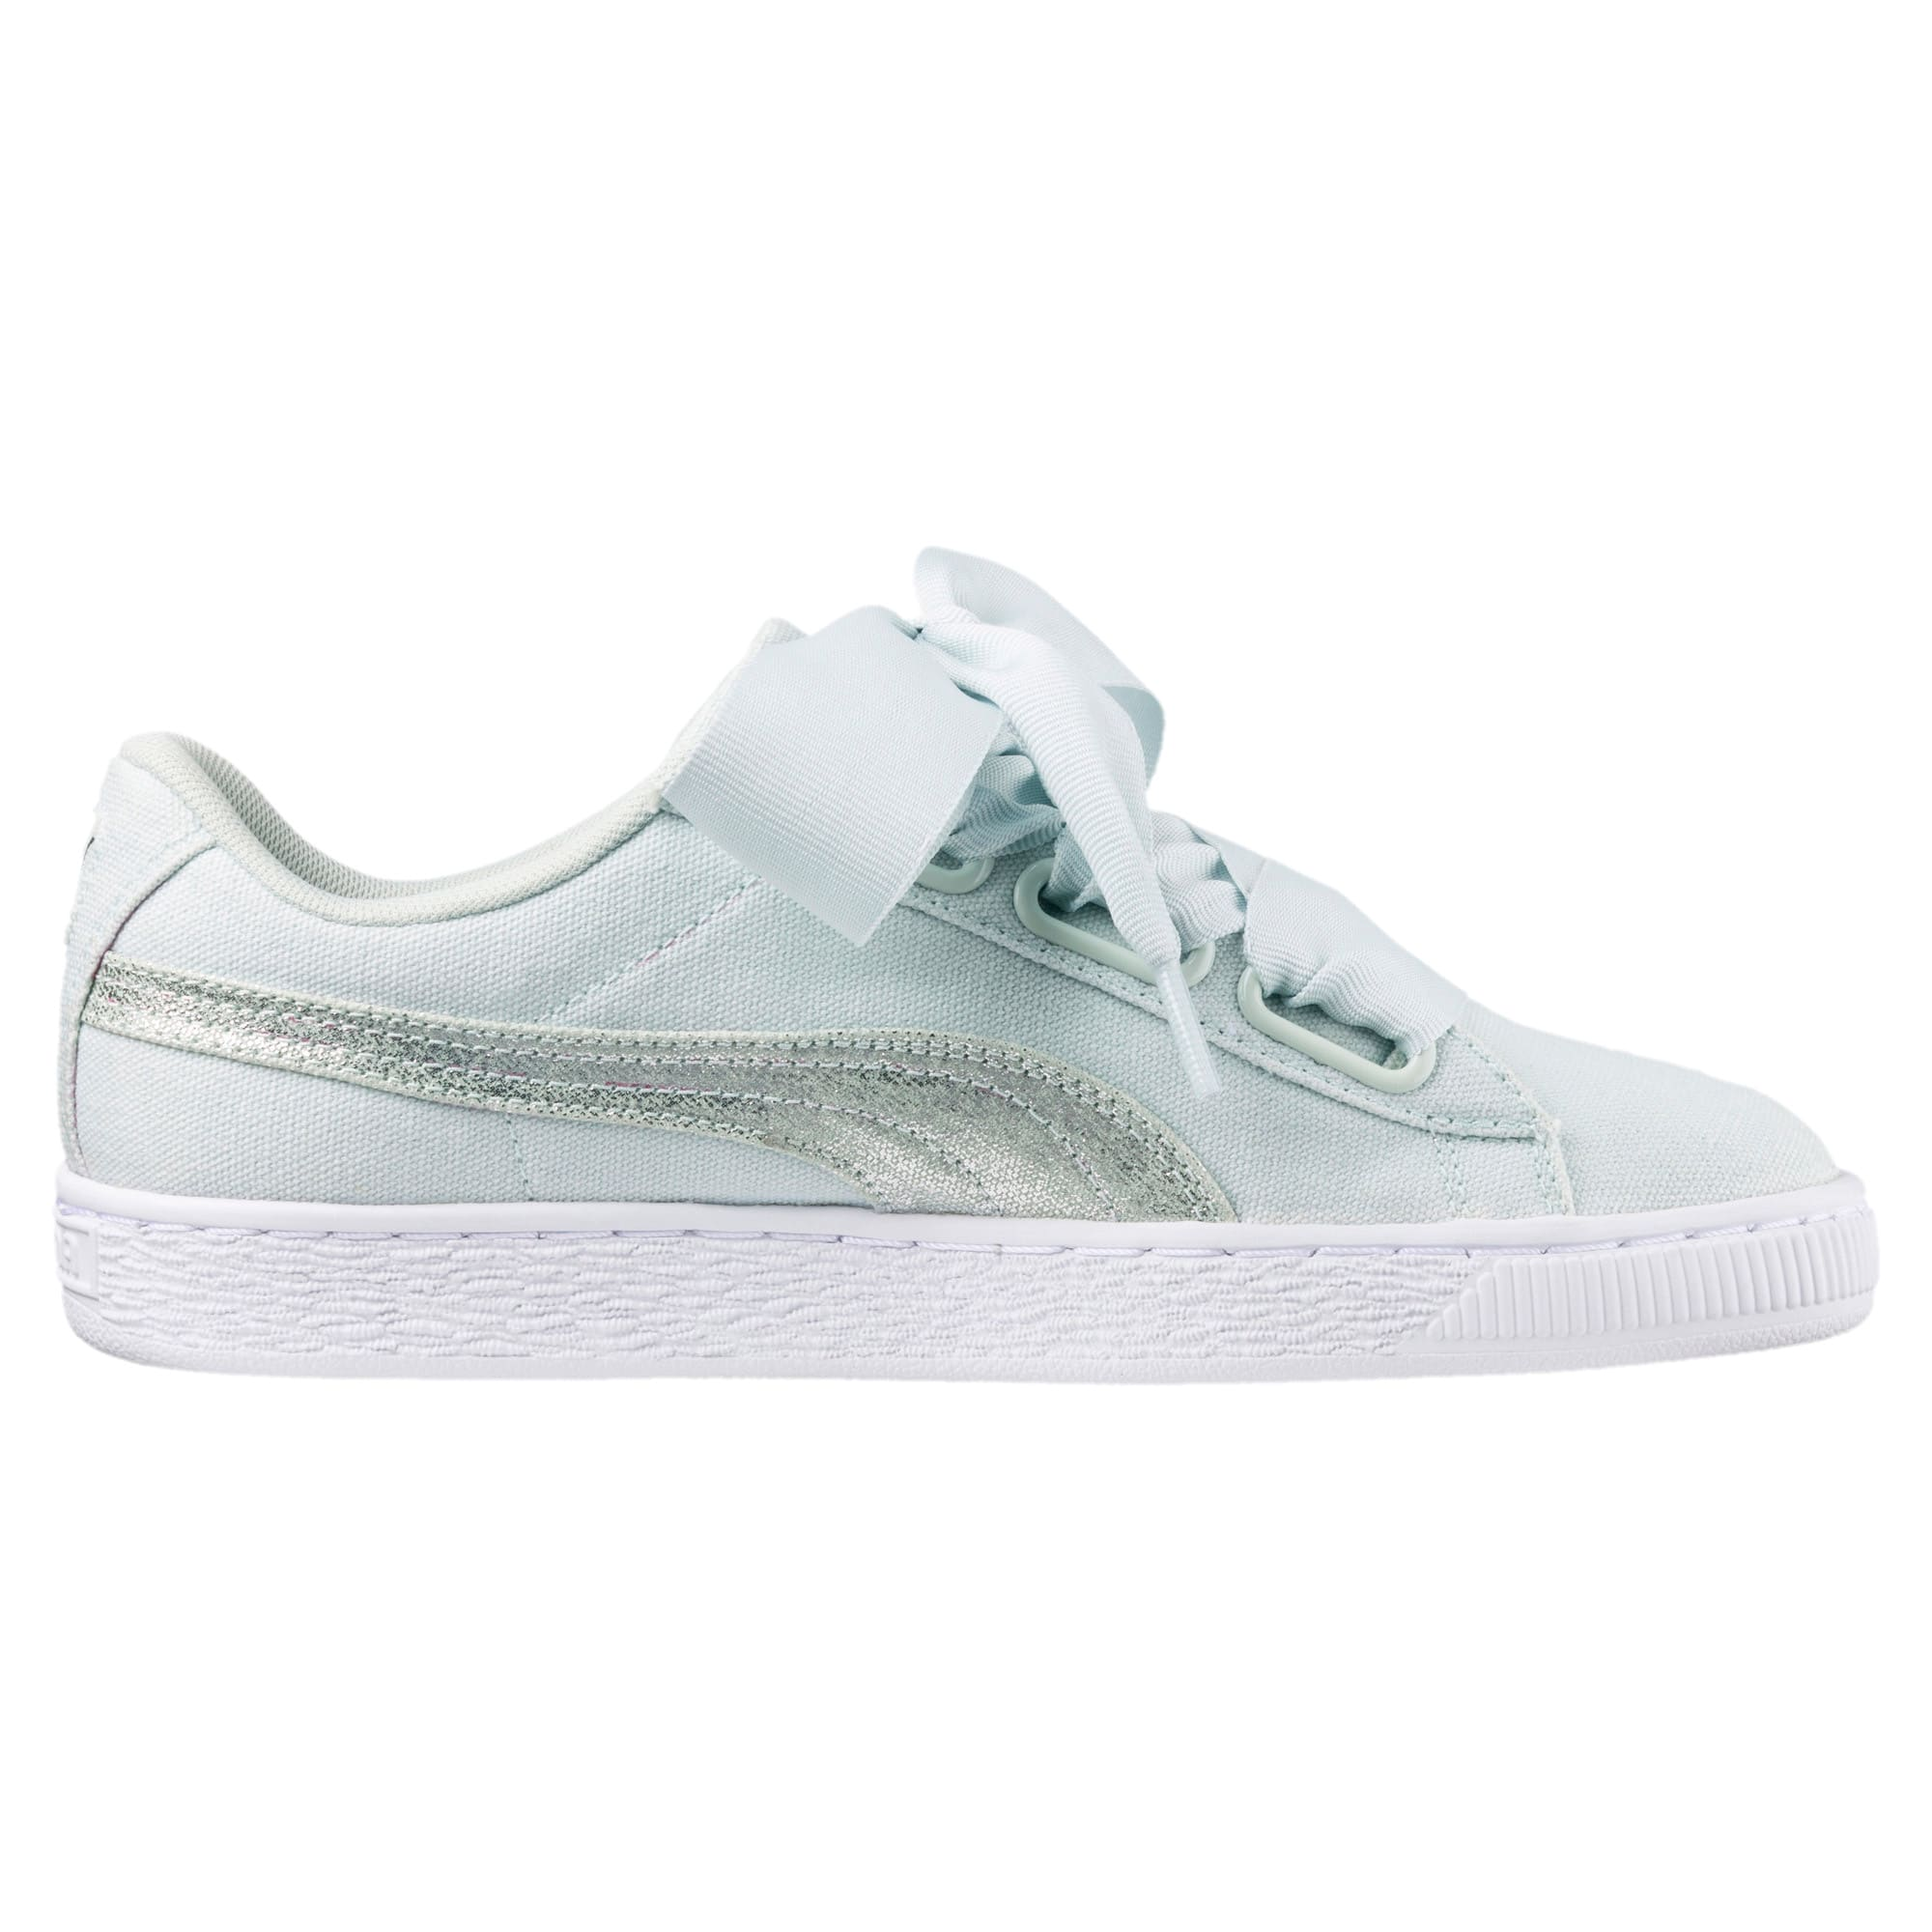 finest selection 084a4 93af7 Basket Heart Canvas Women's Sneakers